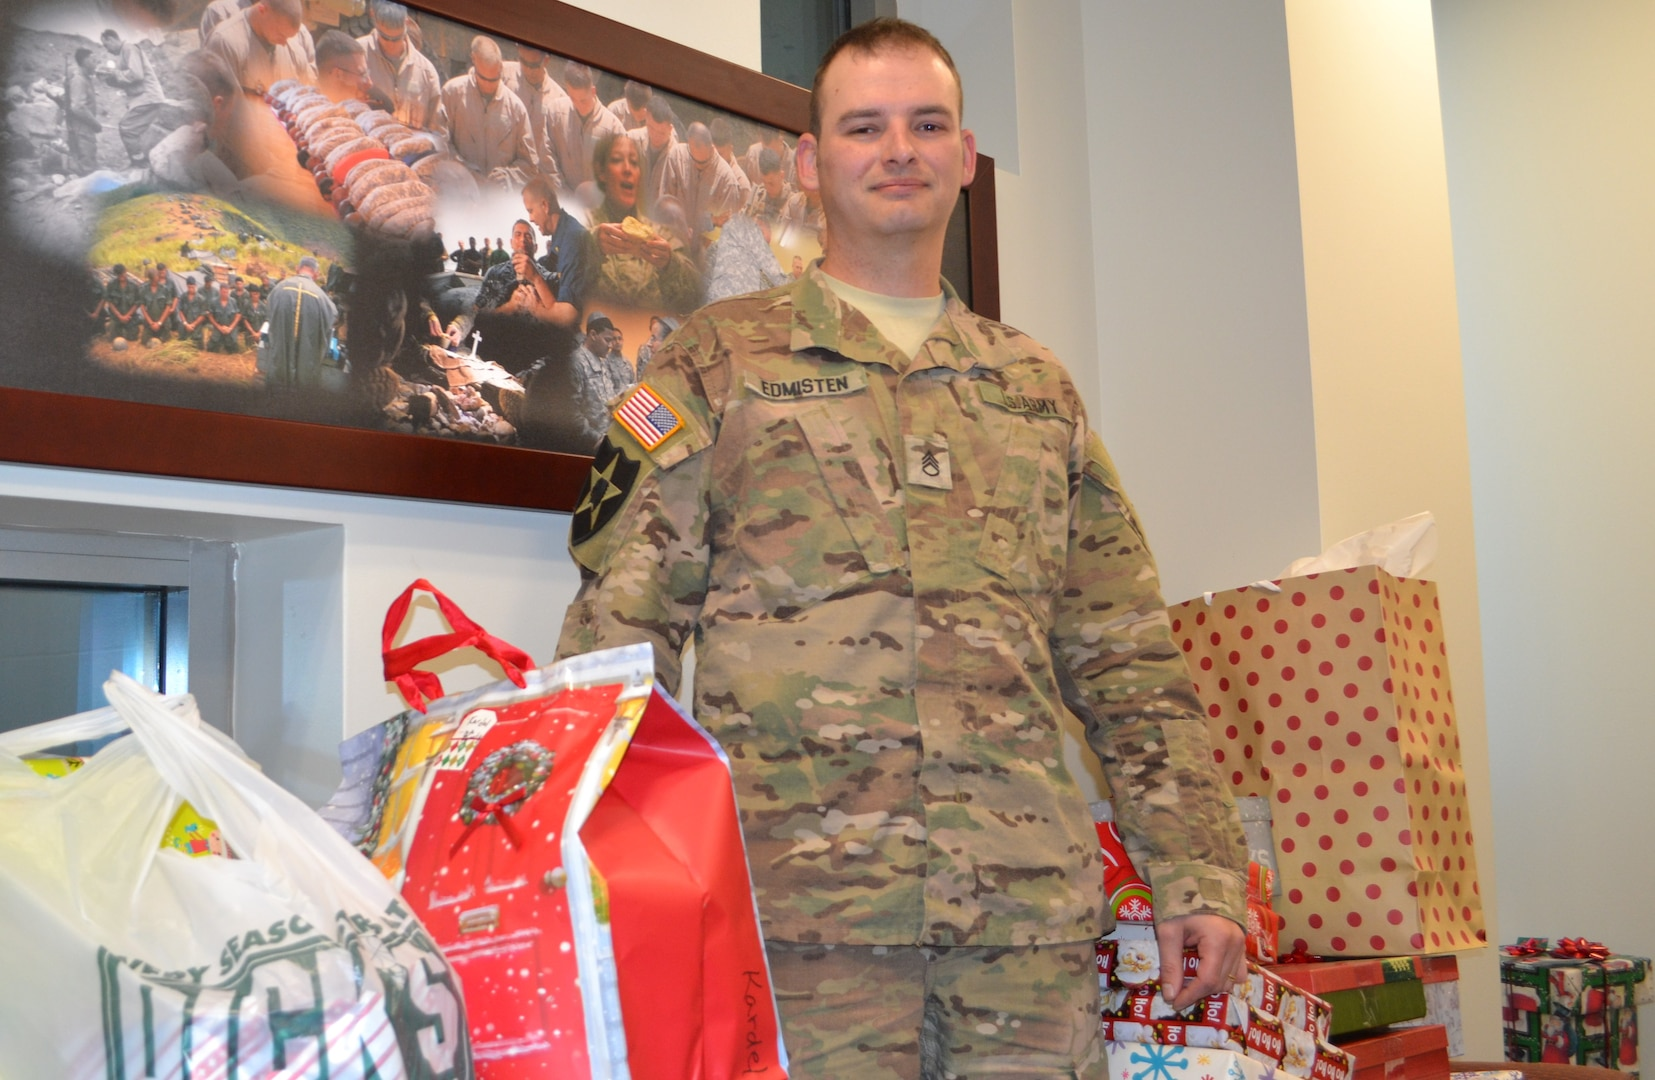 Staff sergeant in ACUs standing with gifts in office, facing viewer